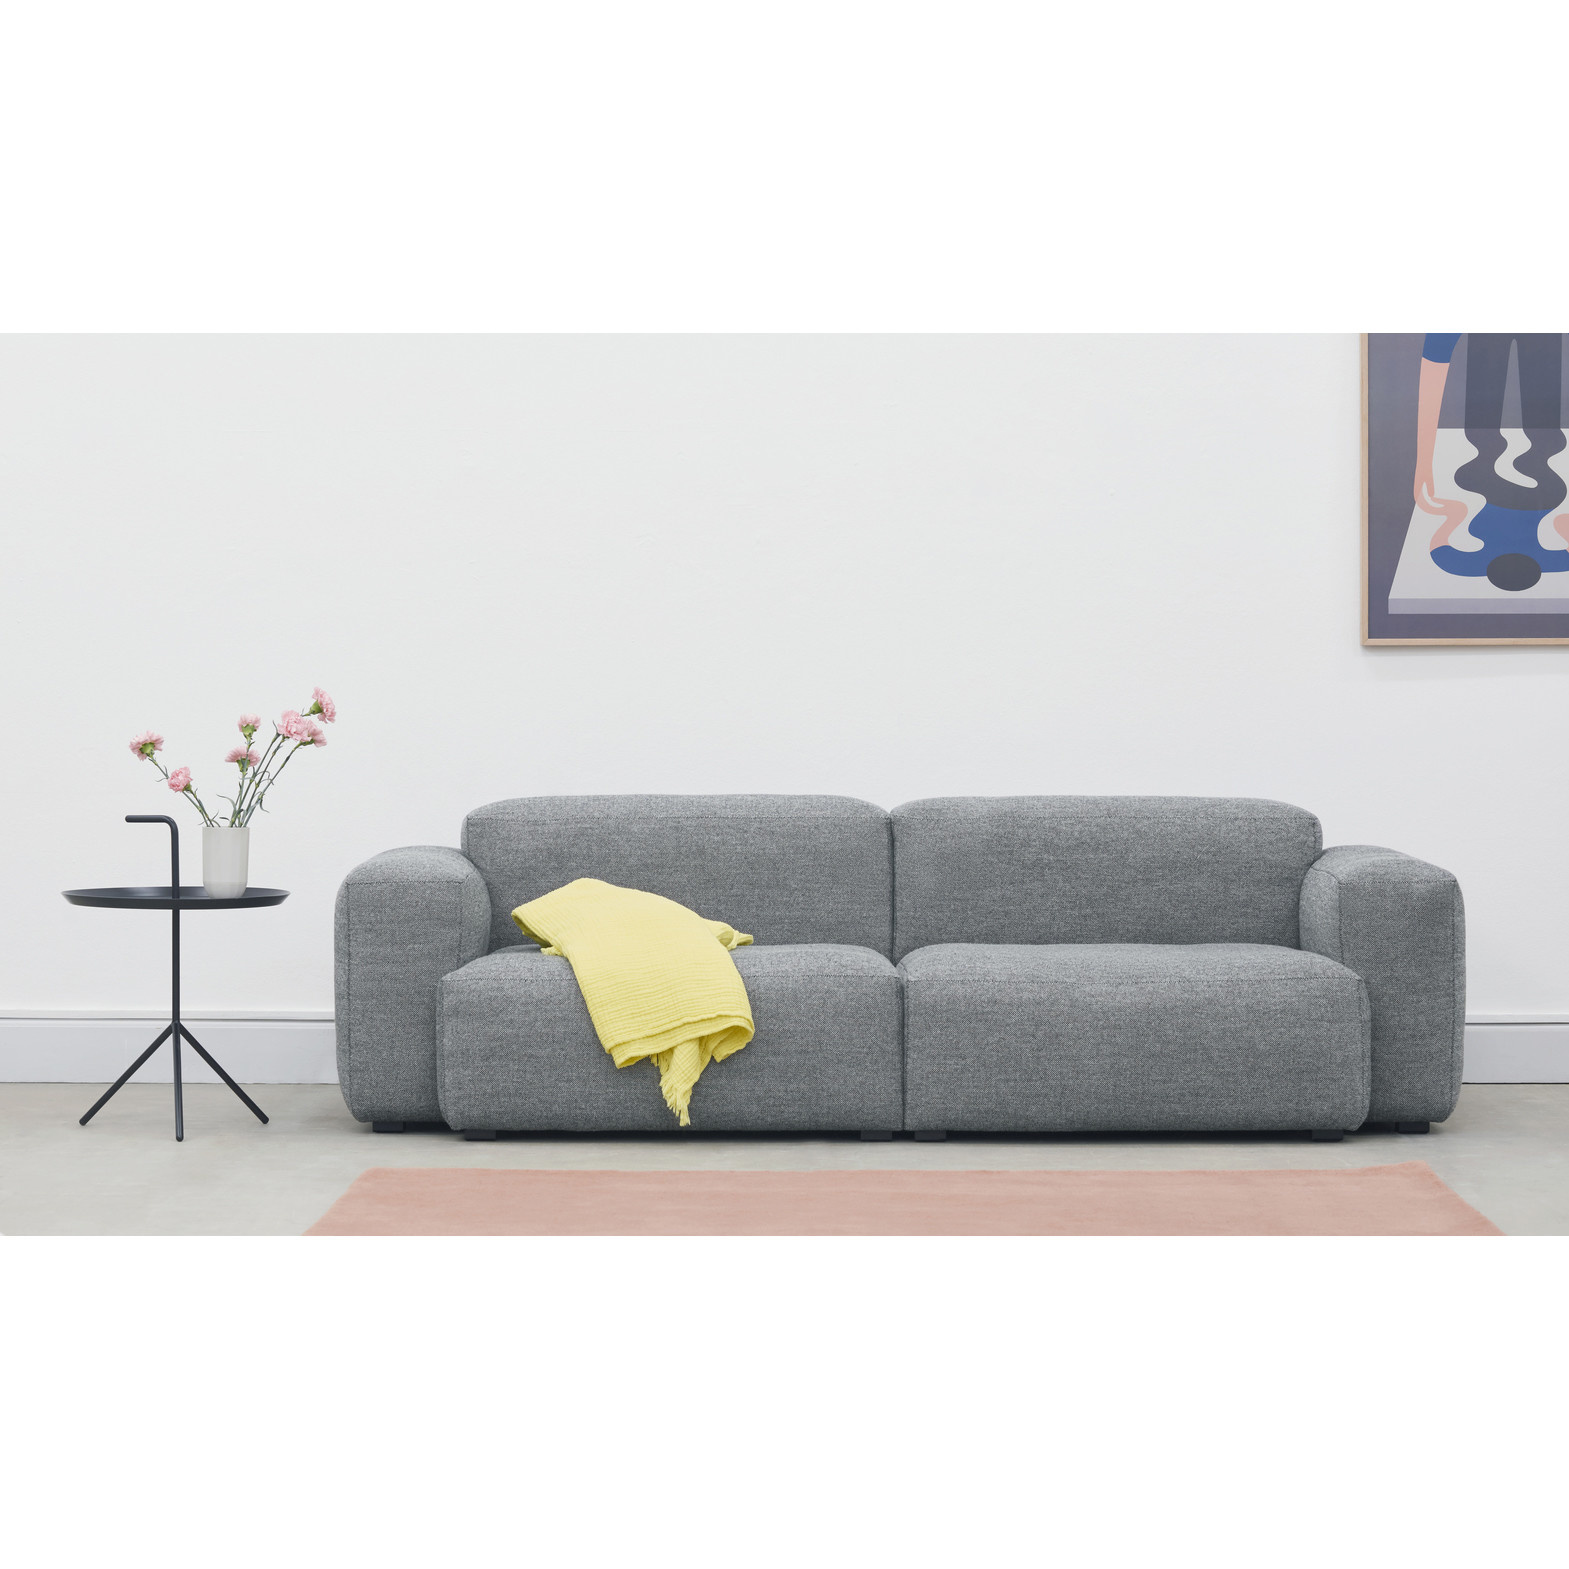 HAY MAGS soft low armrest 2.5 seater - combination 1